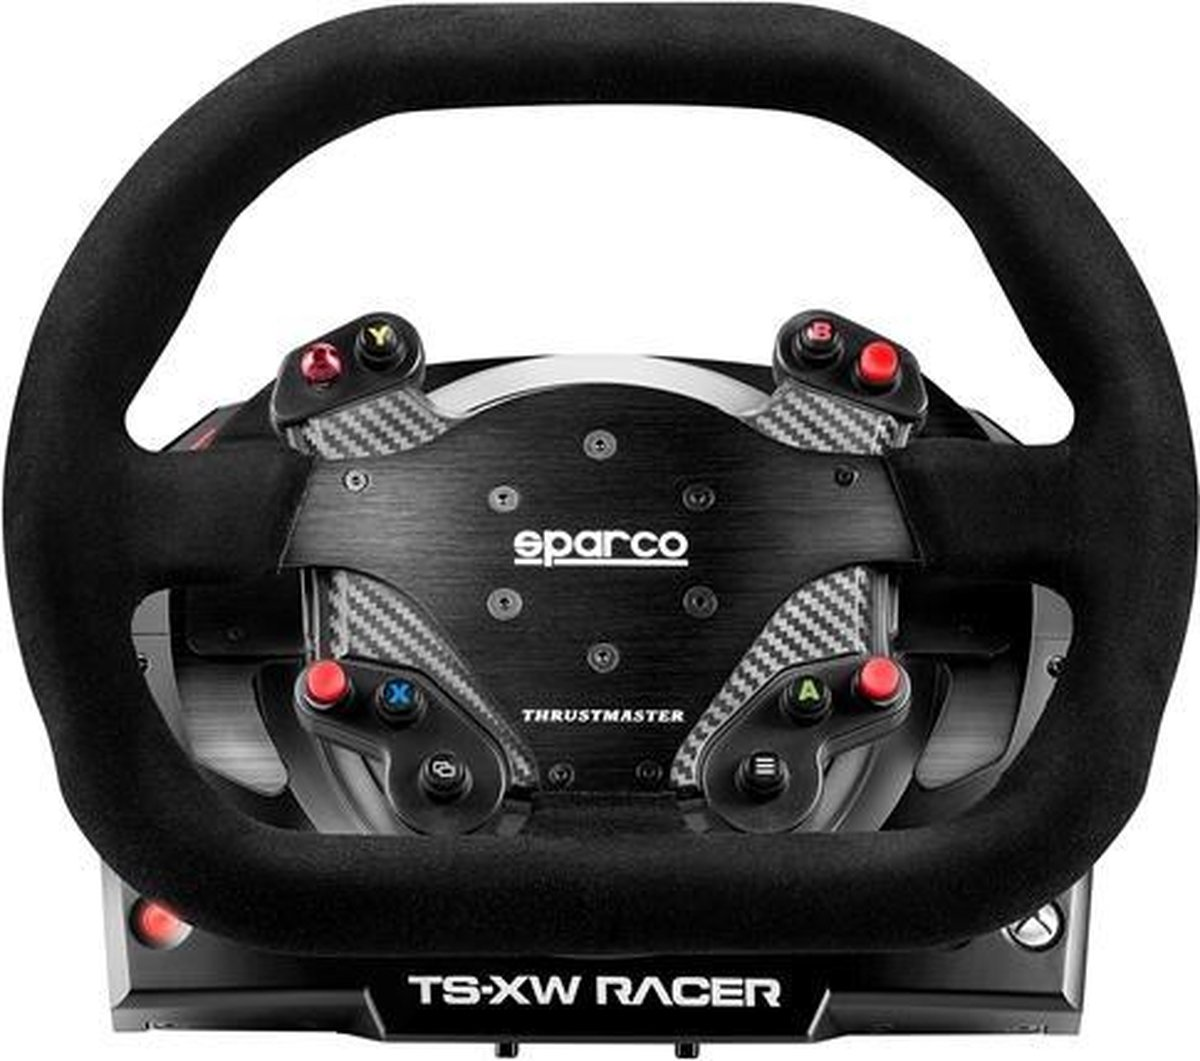 Thrustmaster TSXW Racer Racing Wheel Sparco P310 Competition Mod